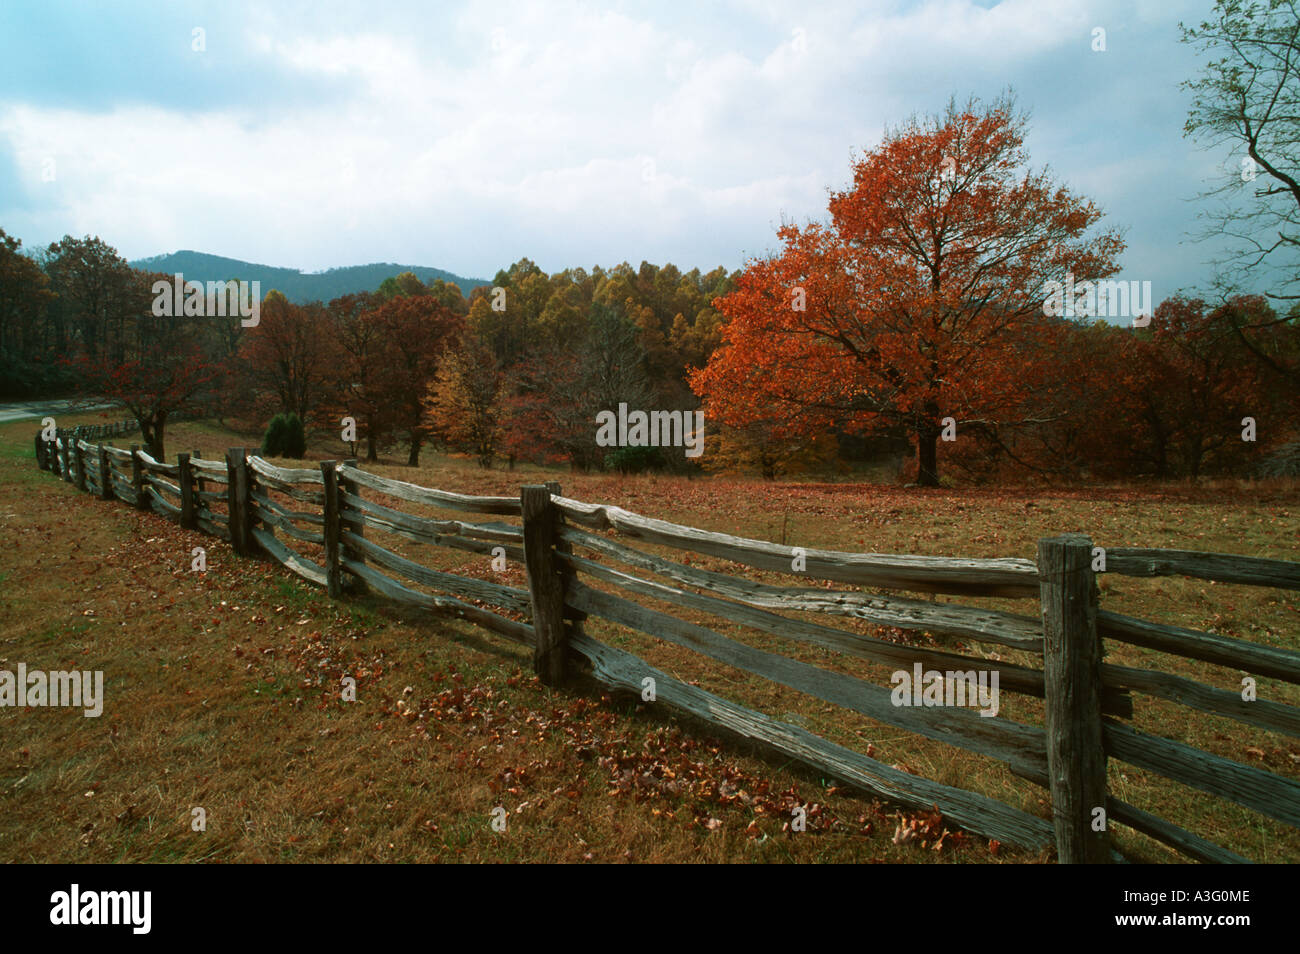 rail fence styles. Split Rail Fence In Appalachian Mountains Along Blue Ridge Parkway Styles